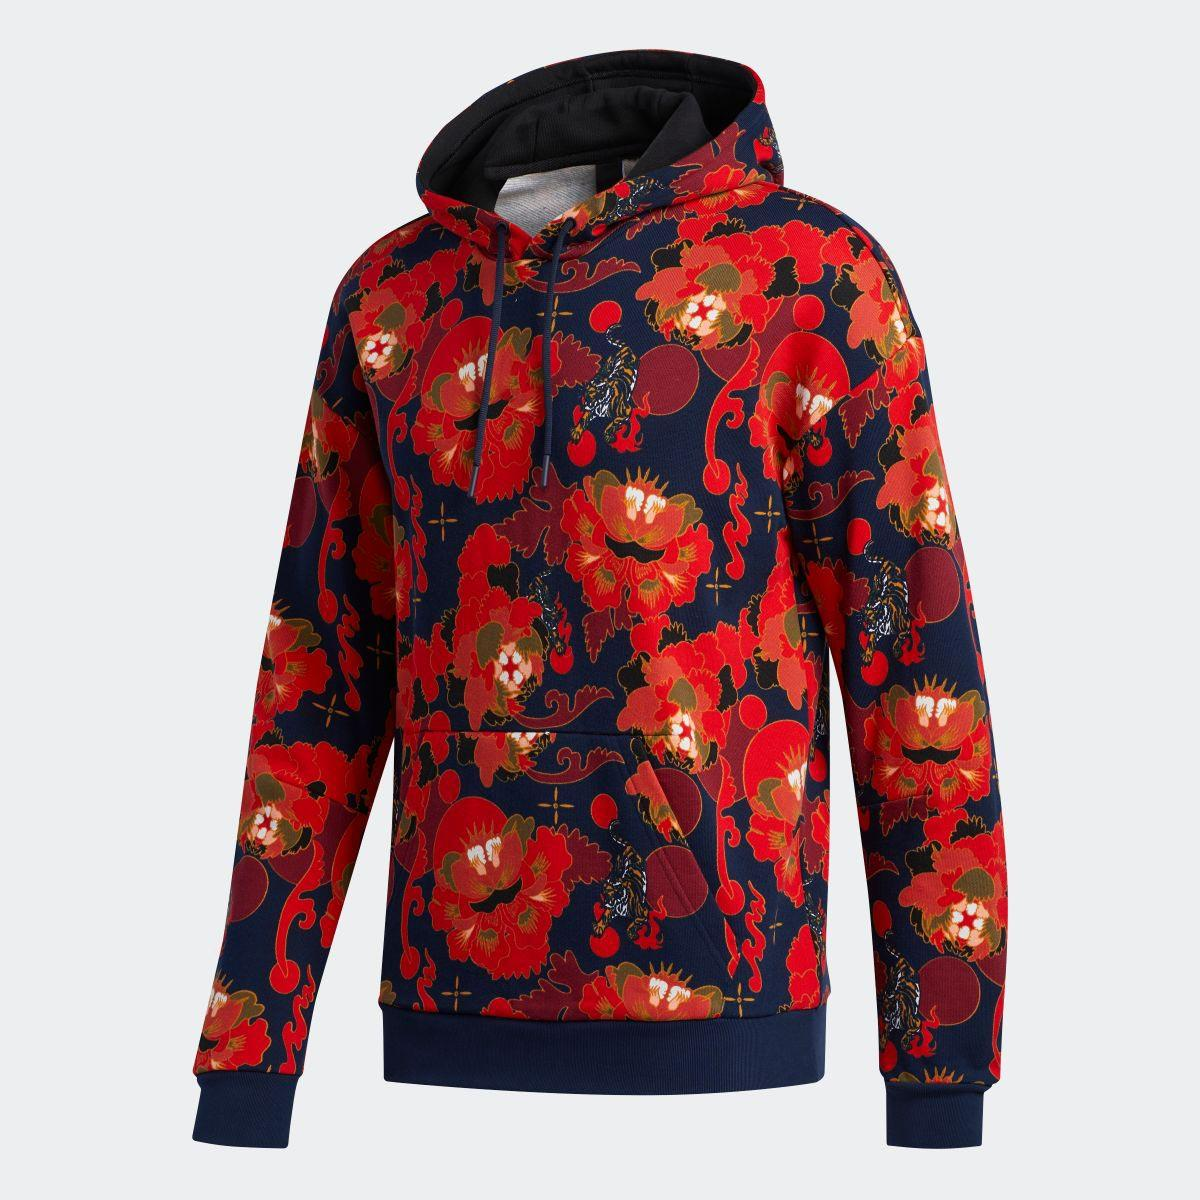 New Mens Designer Sweater Soprts Casual Sweat Shirt Brand Fashion Graphic Hooded Sweatshirt Top Sweat Shirt Red S-2XL